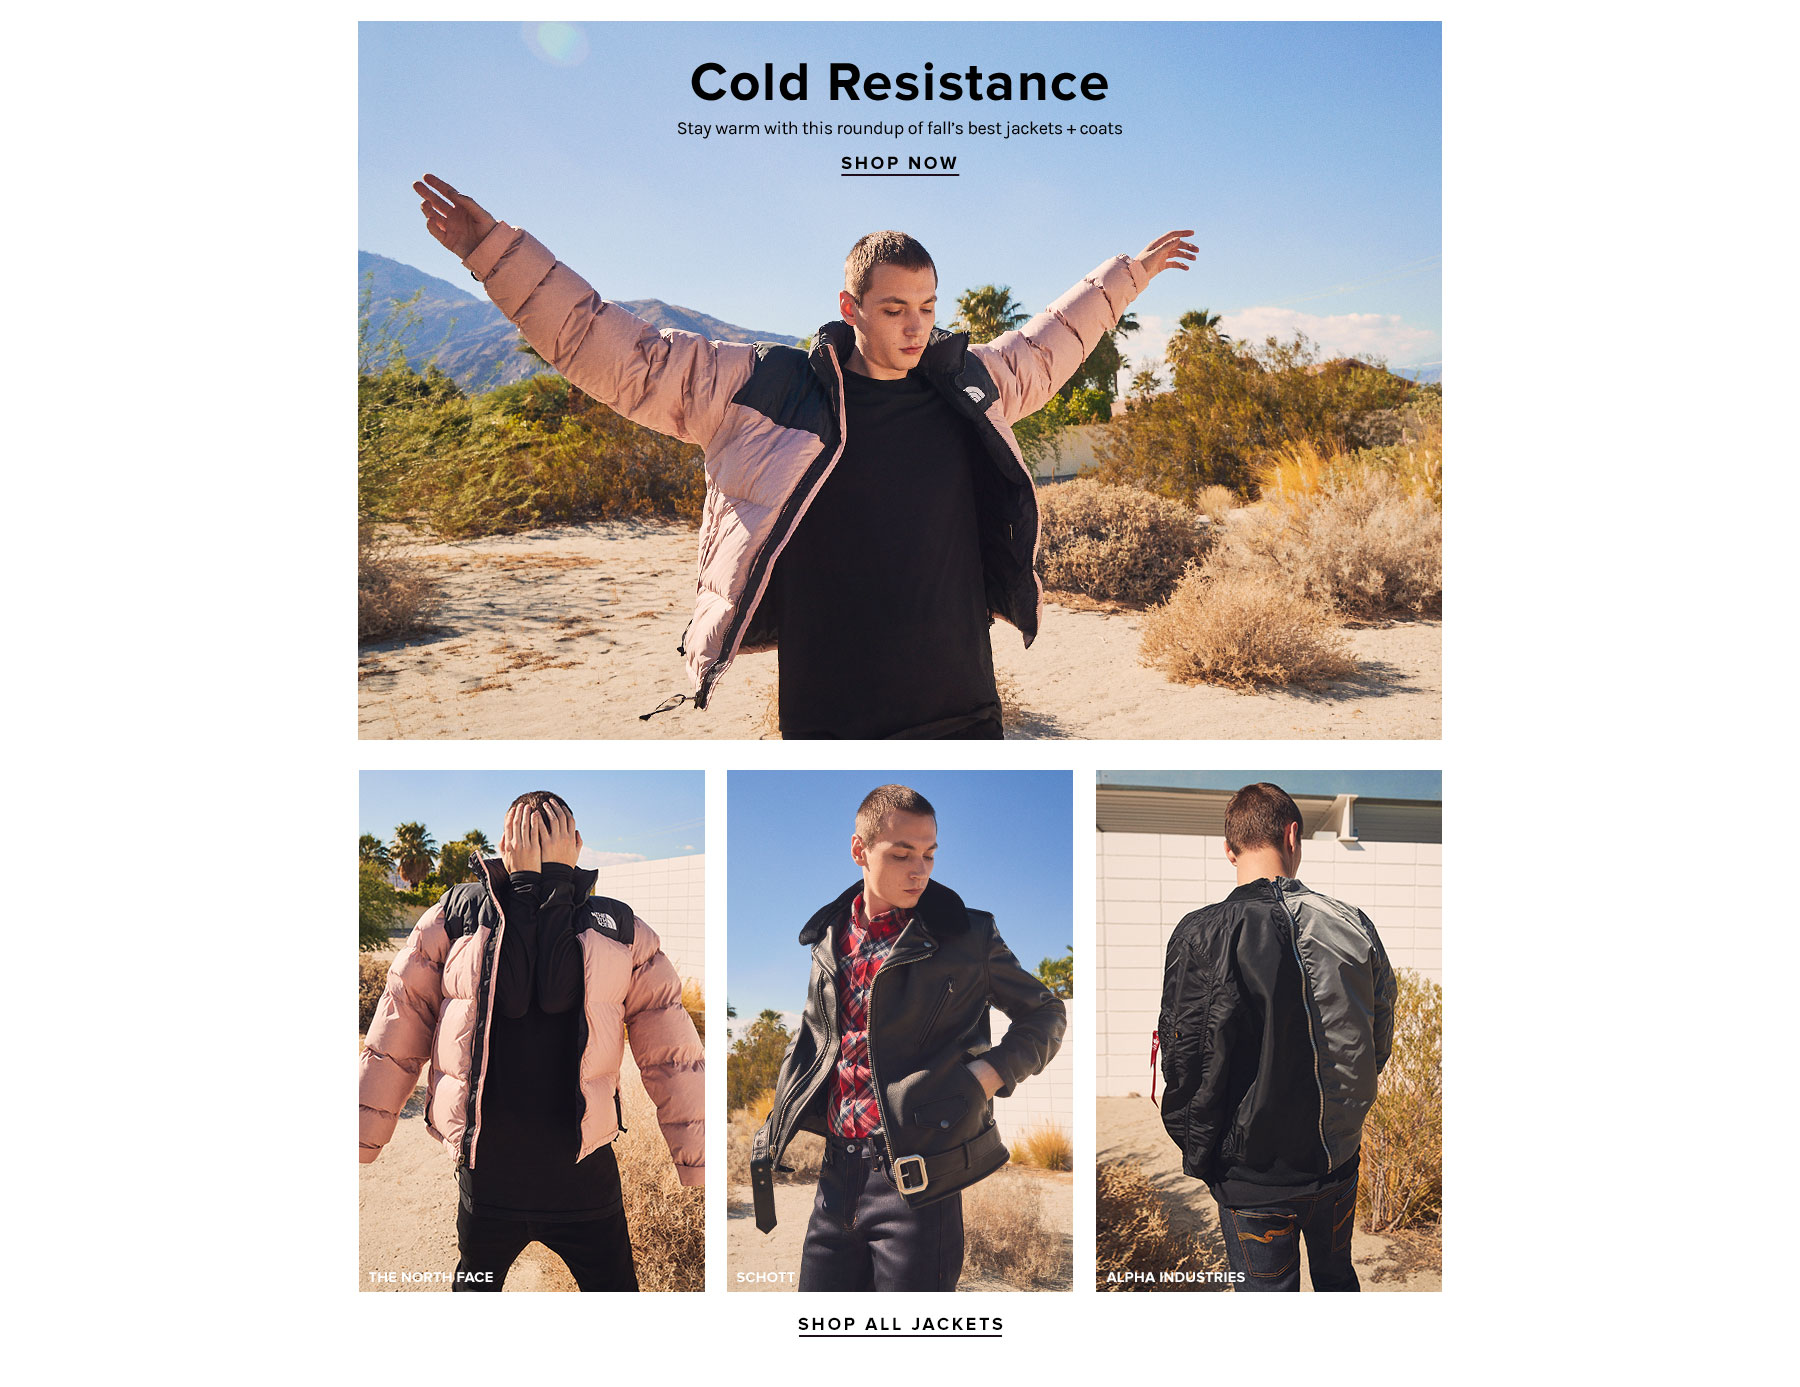 Cold Resistance. Stay warm with this roundup of fall's best jackets + coats. Shop Now.